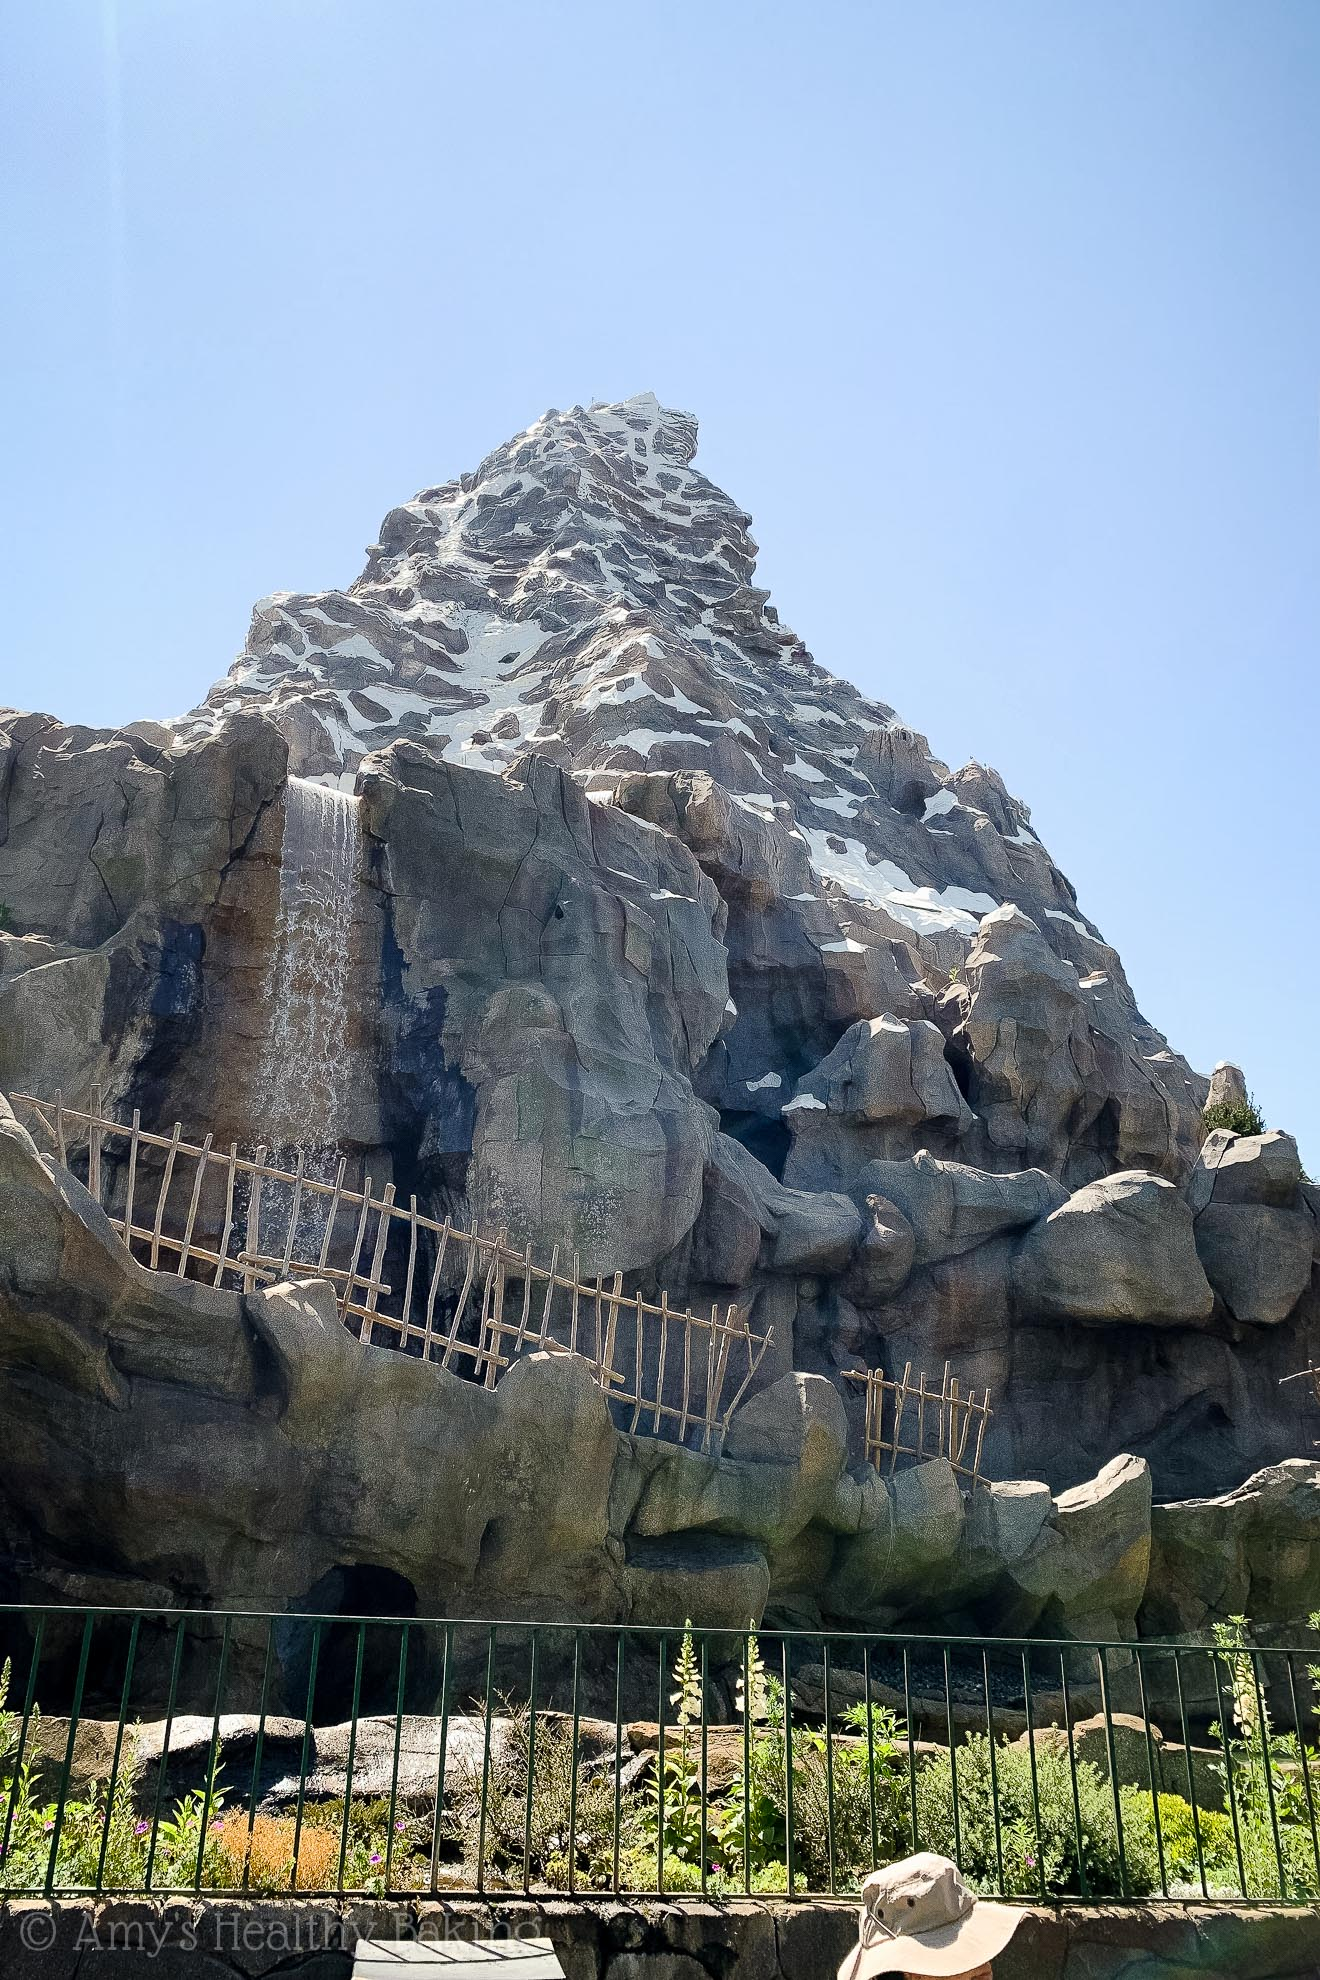 The Matterhorn in Disneyland - Anaheim, California